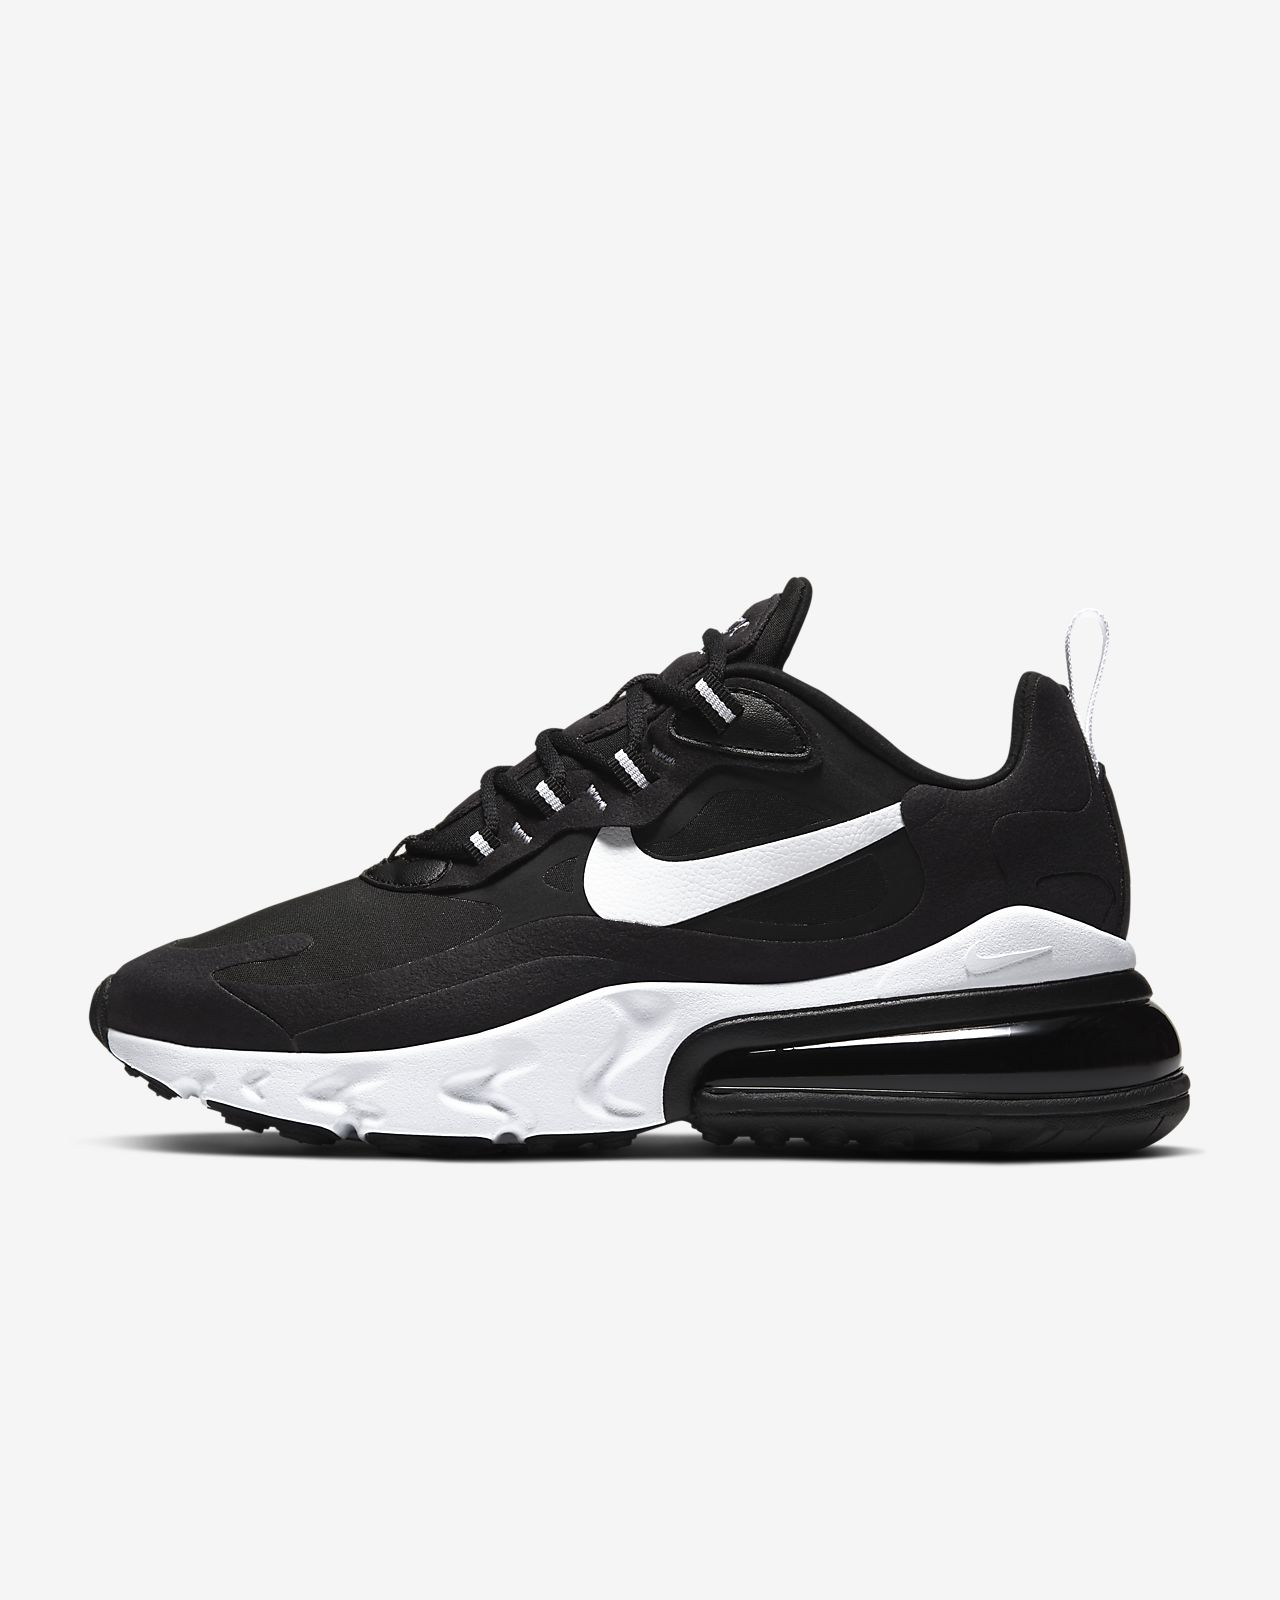 Image result for Nike Air